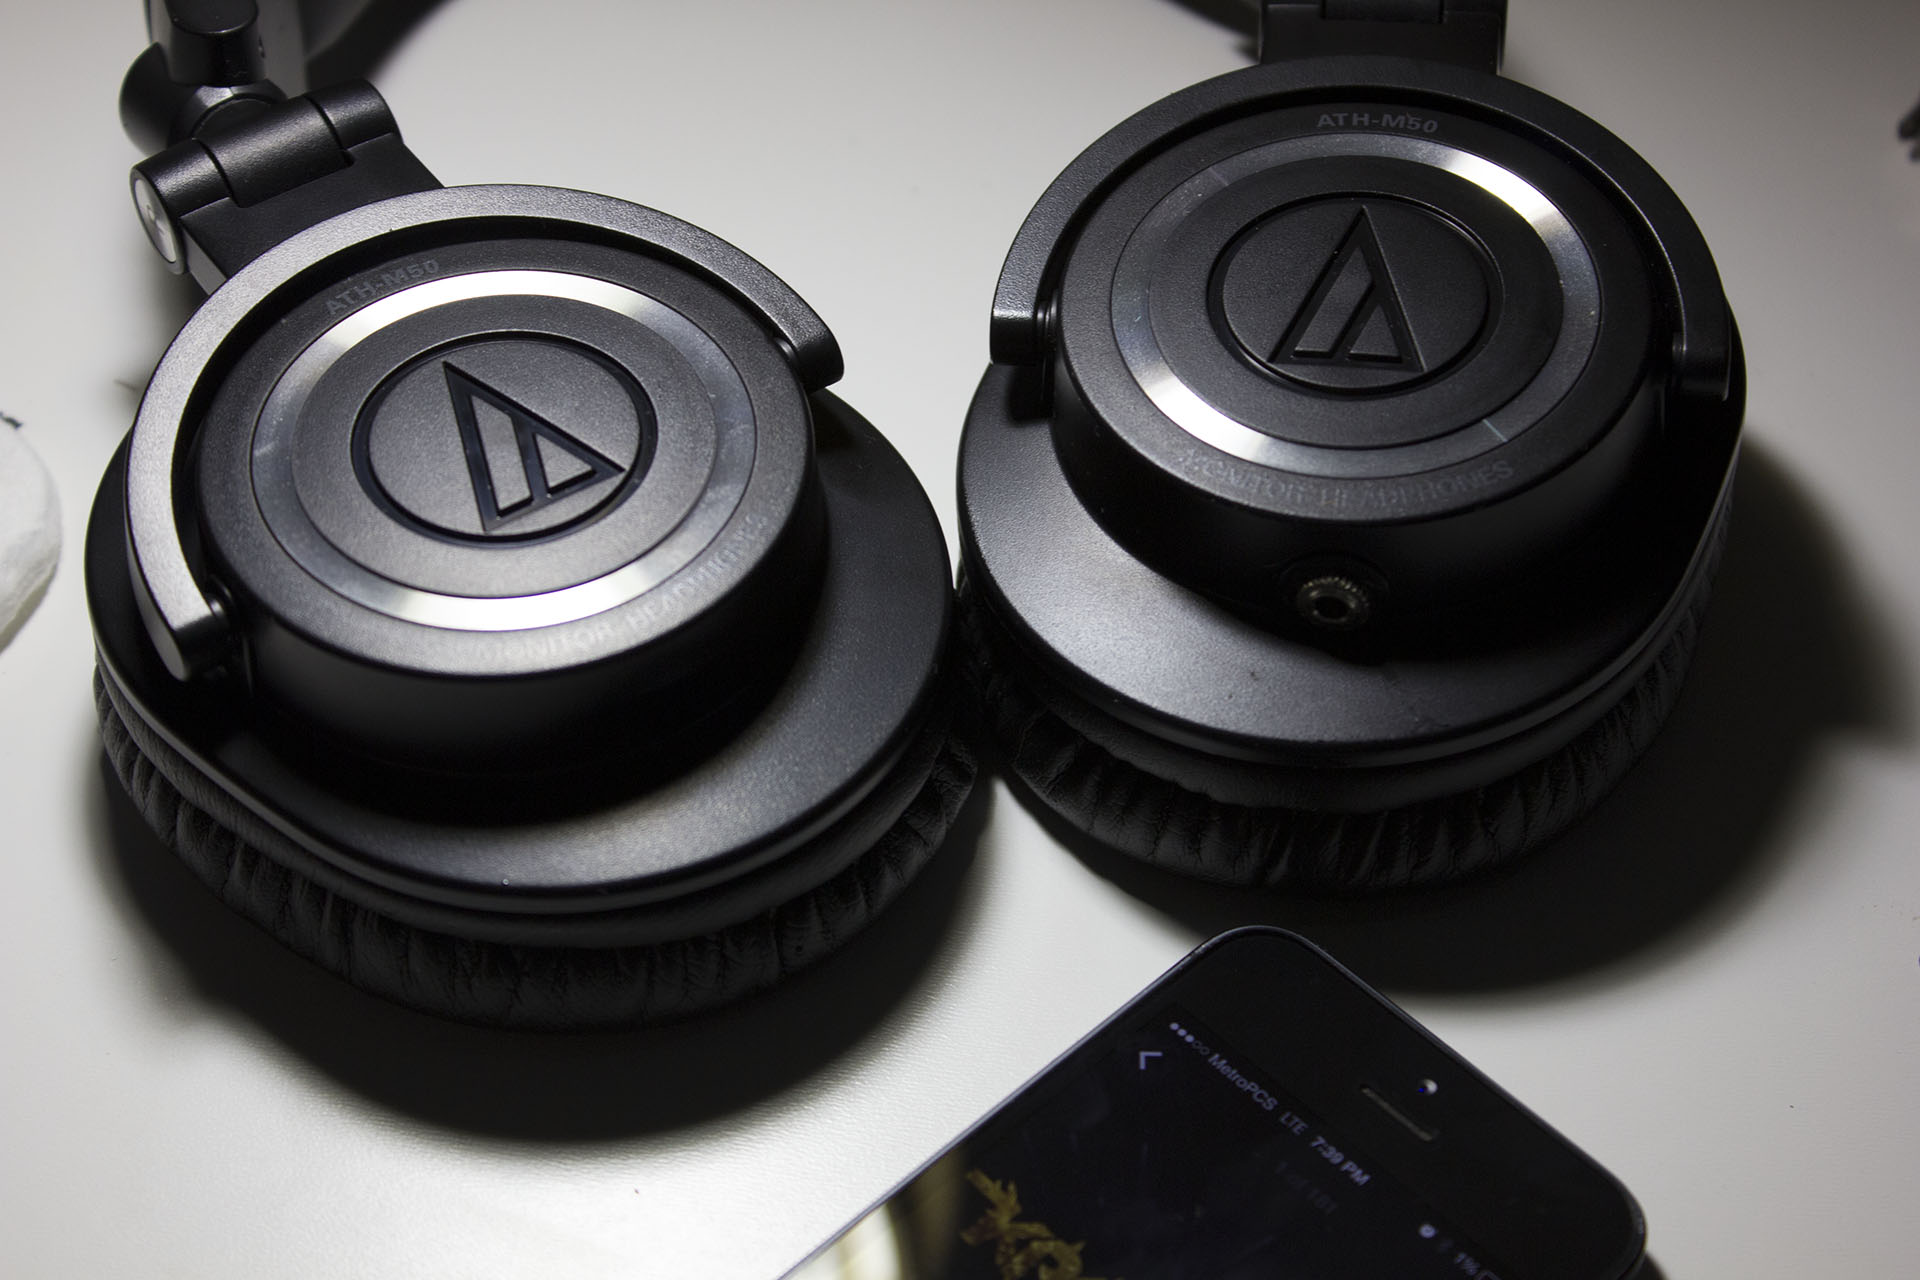 Audio Technica ATH M50s removable cable mod